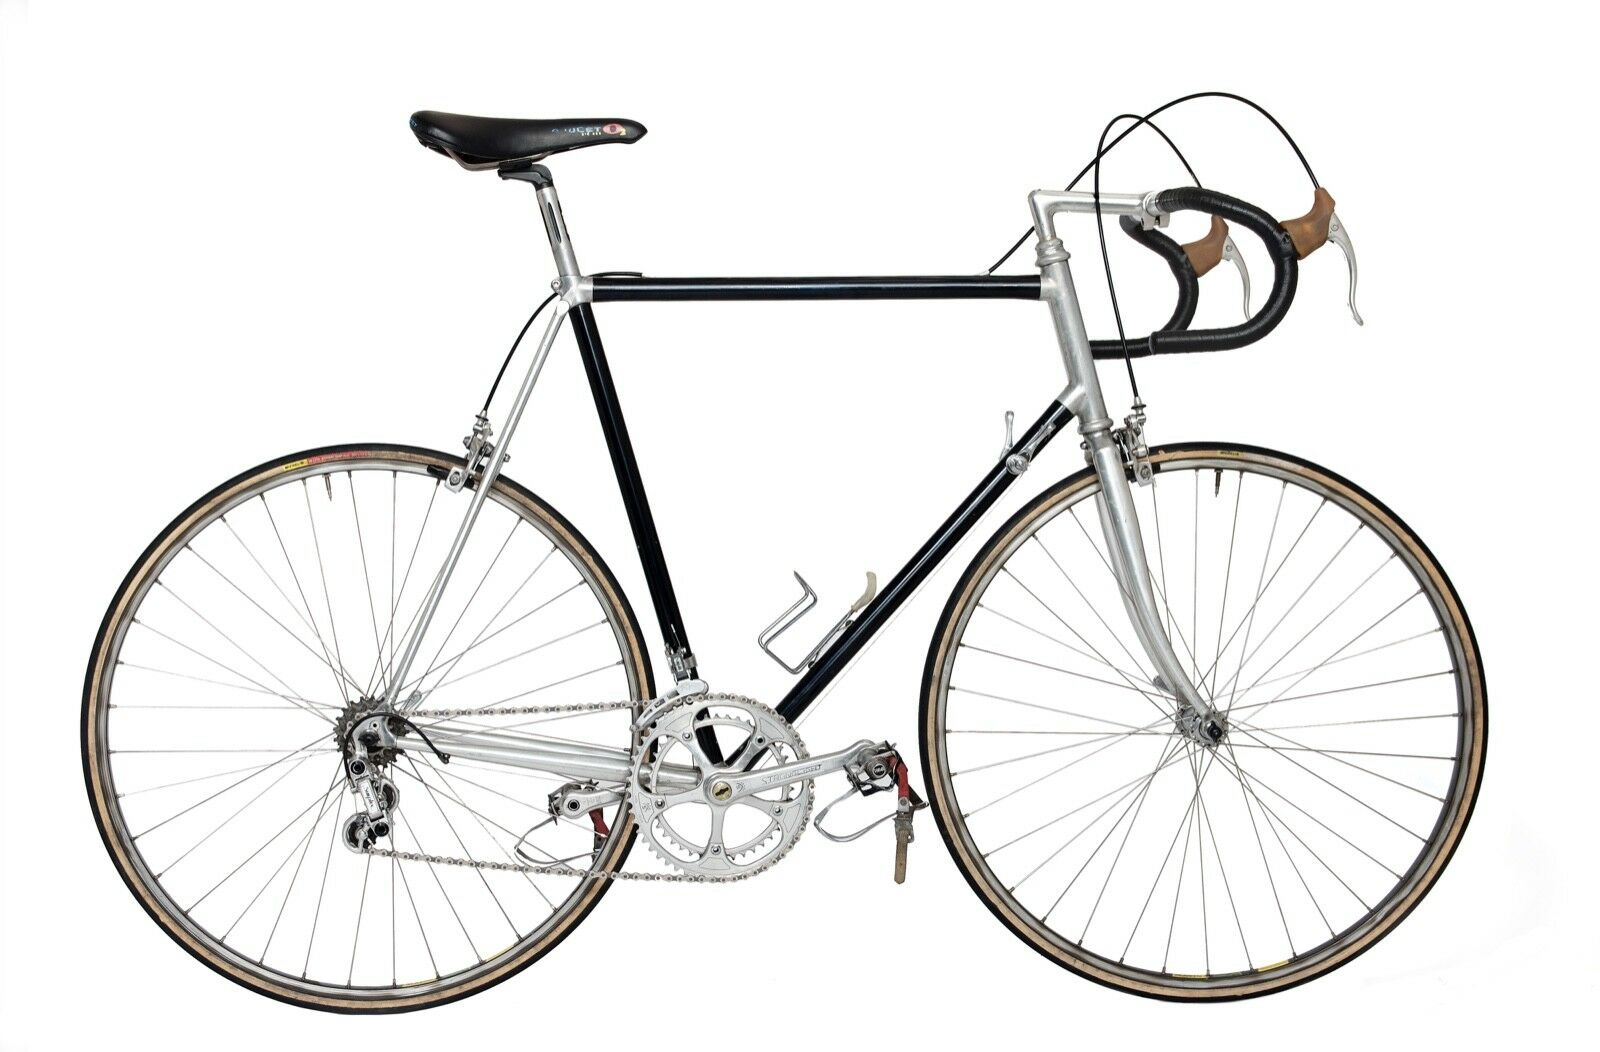 Vitus Modele Depose early 1980s Bicycle,  Size 60 L'Eroica Simplex  honest service